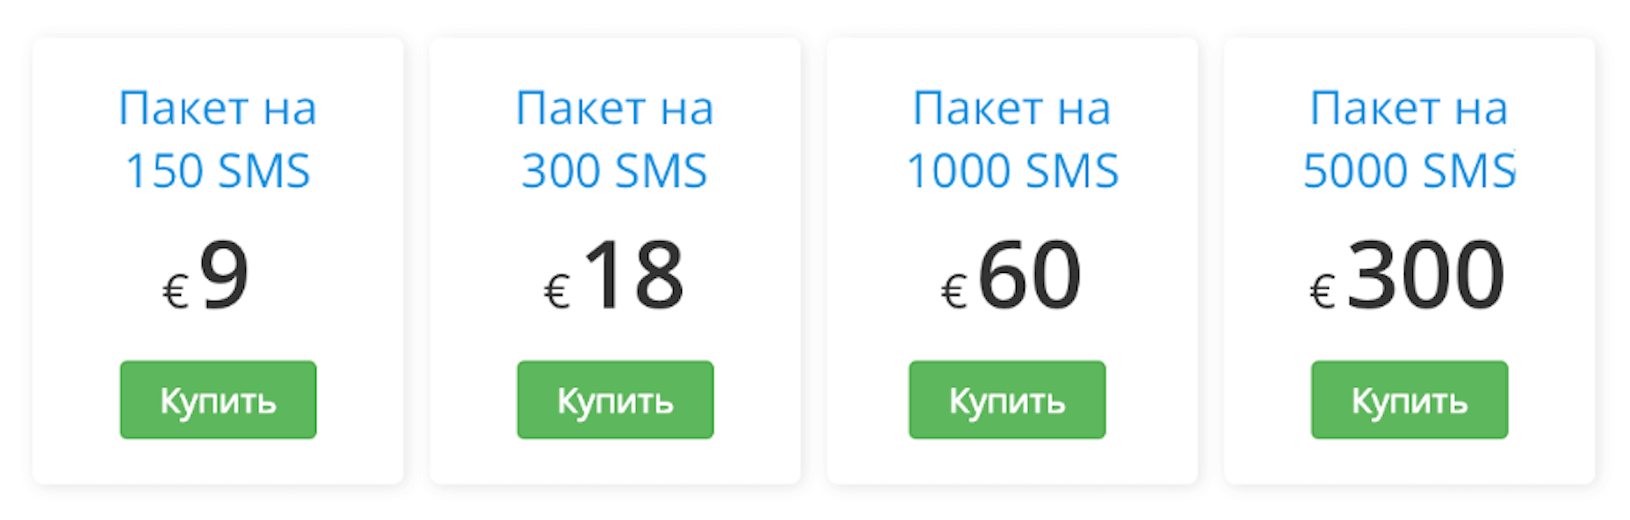 sms-packages.png (49 KB)